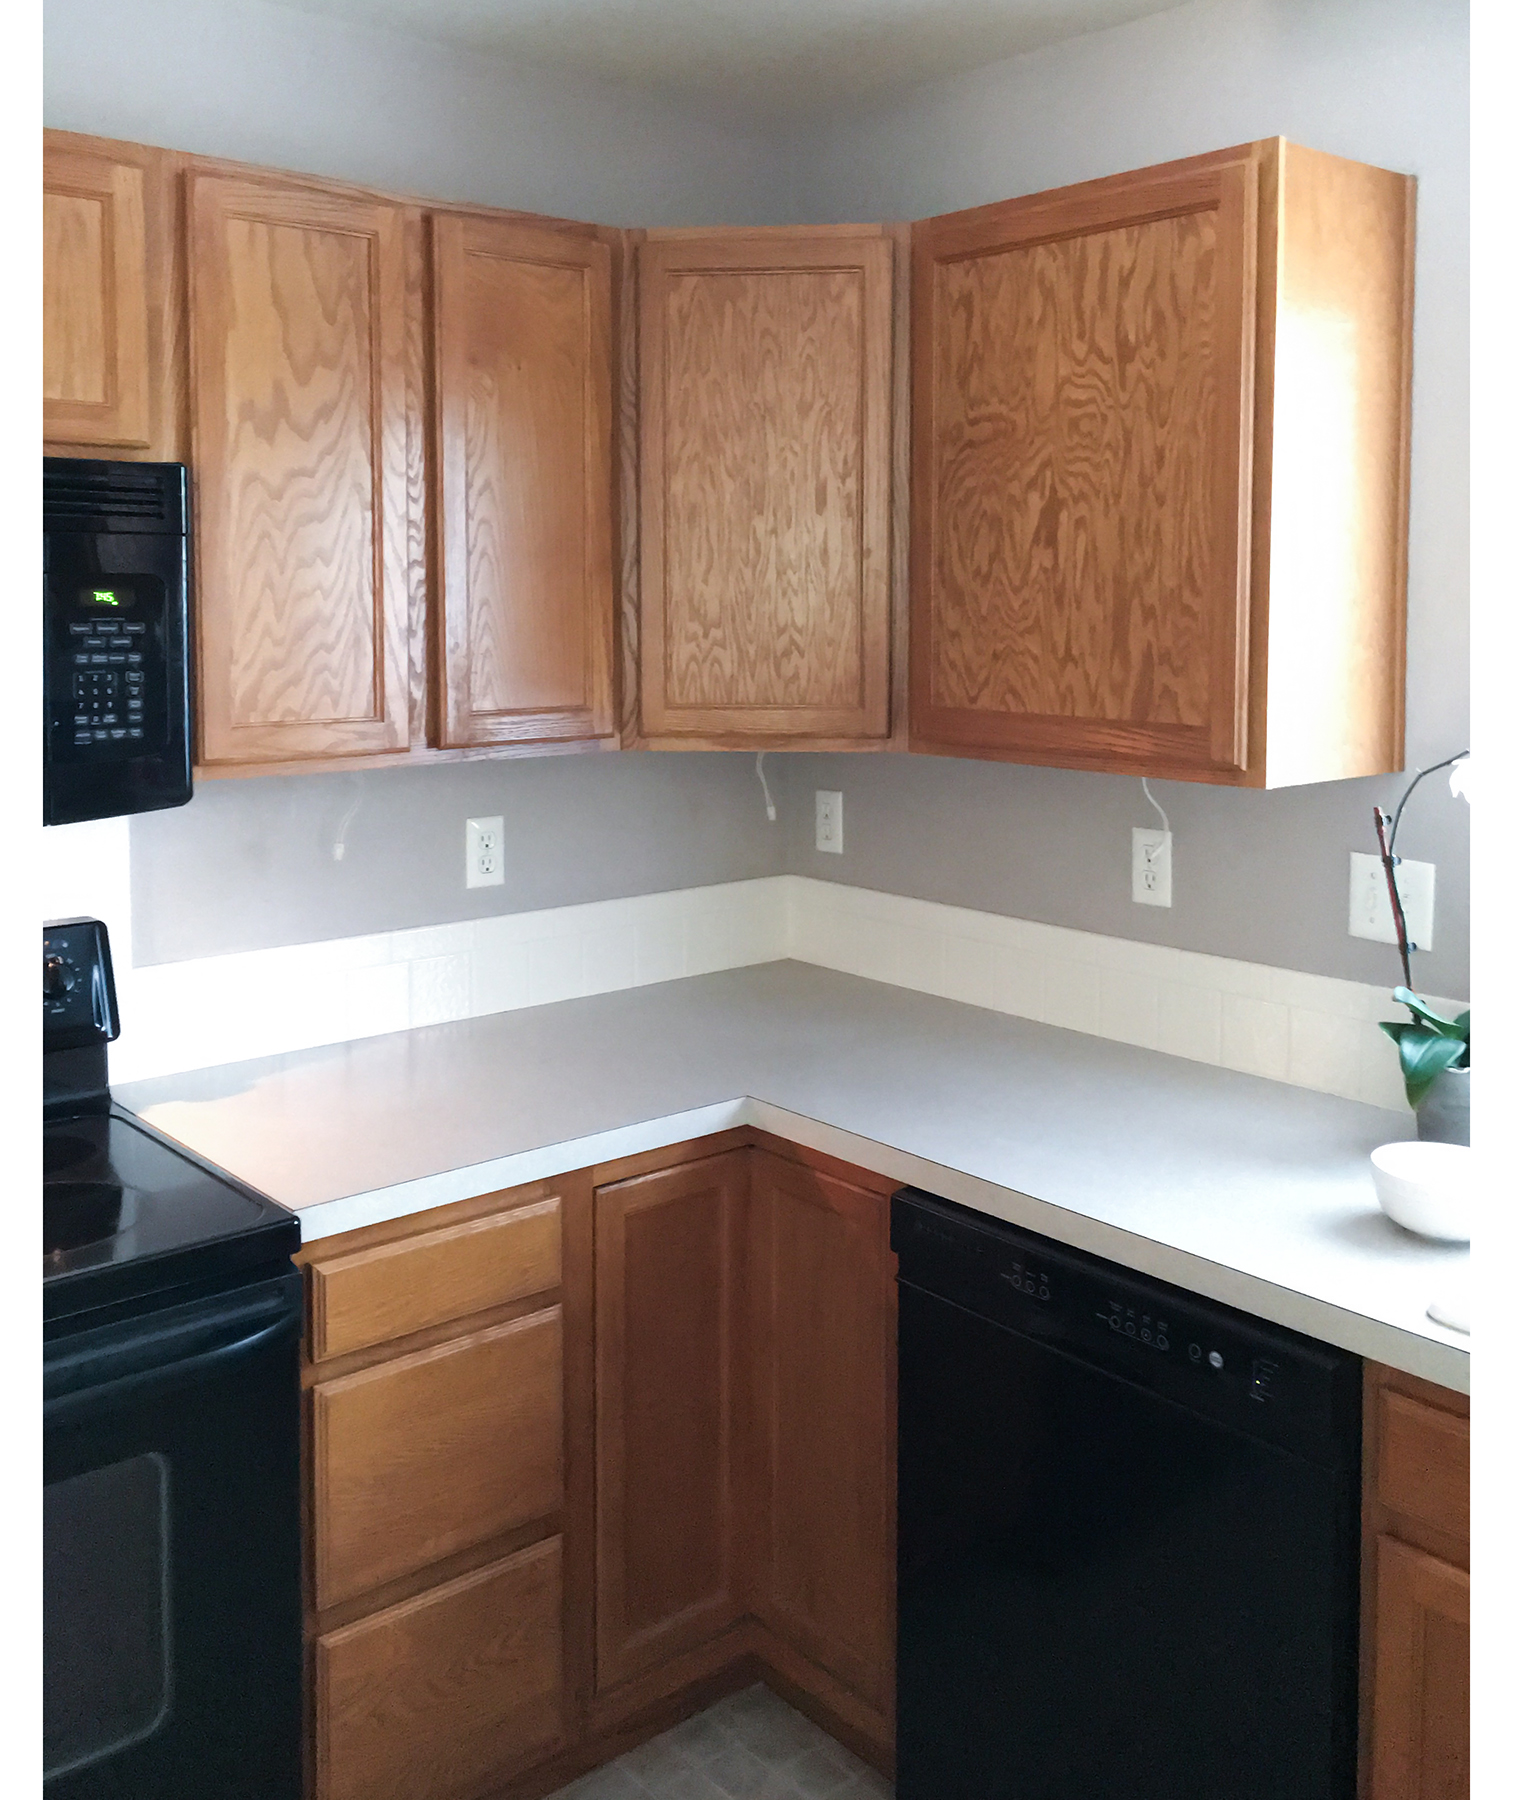 Frugal Kitchen And Cabinets Owner